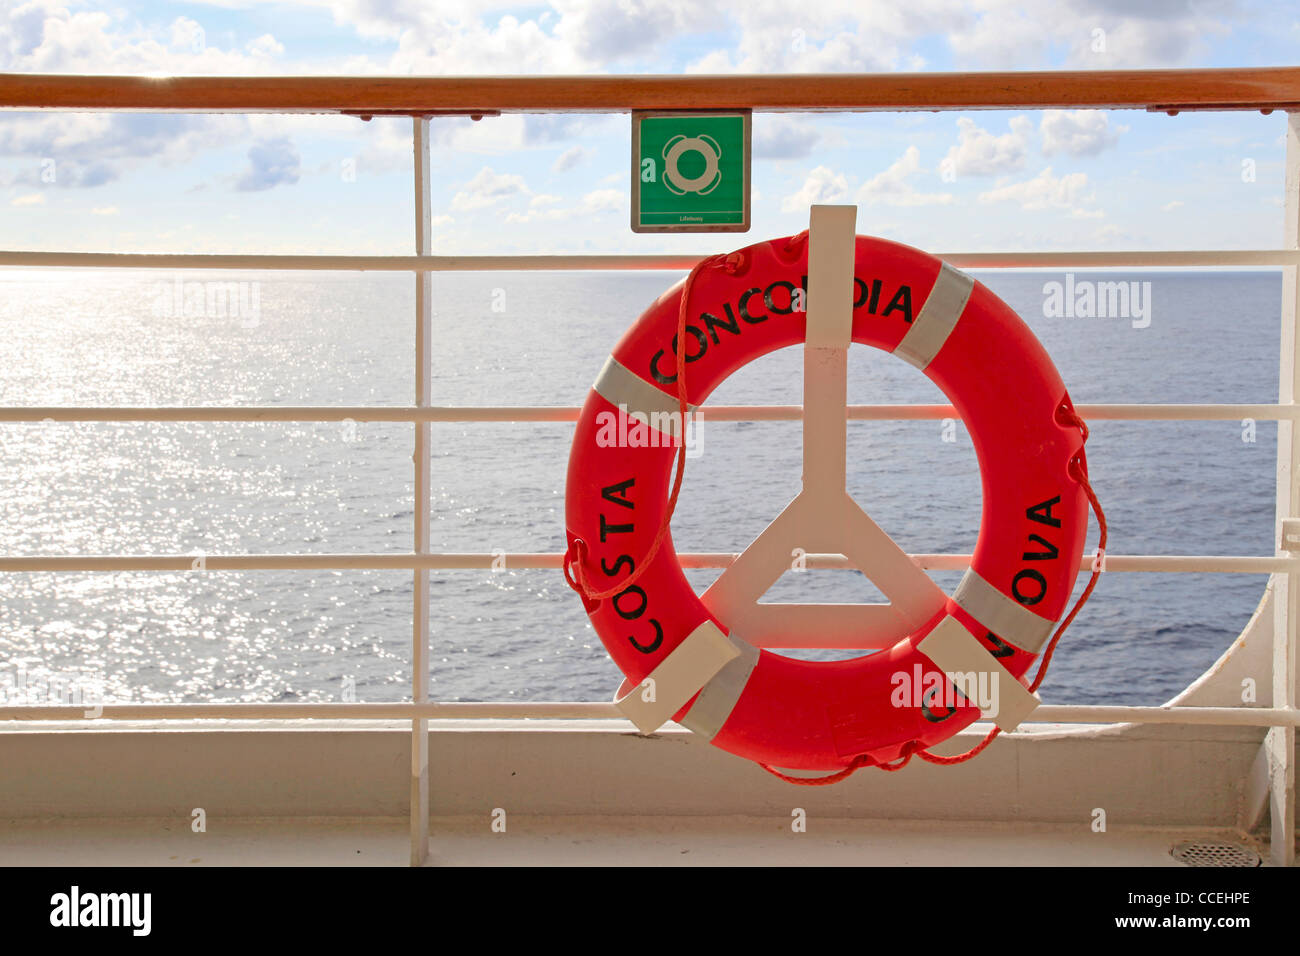 Costa Concordia cruise ship orange lifebuoy safety equipment fixed on open deck. The ship was wrecked due to collision - Stock Image